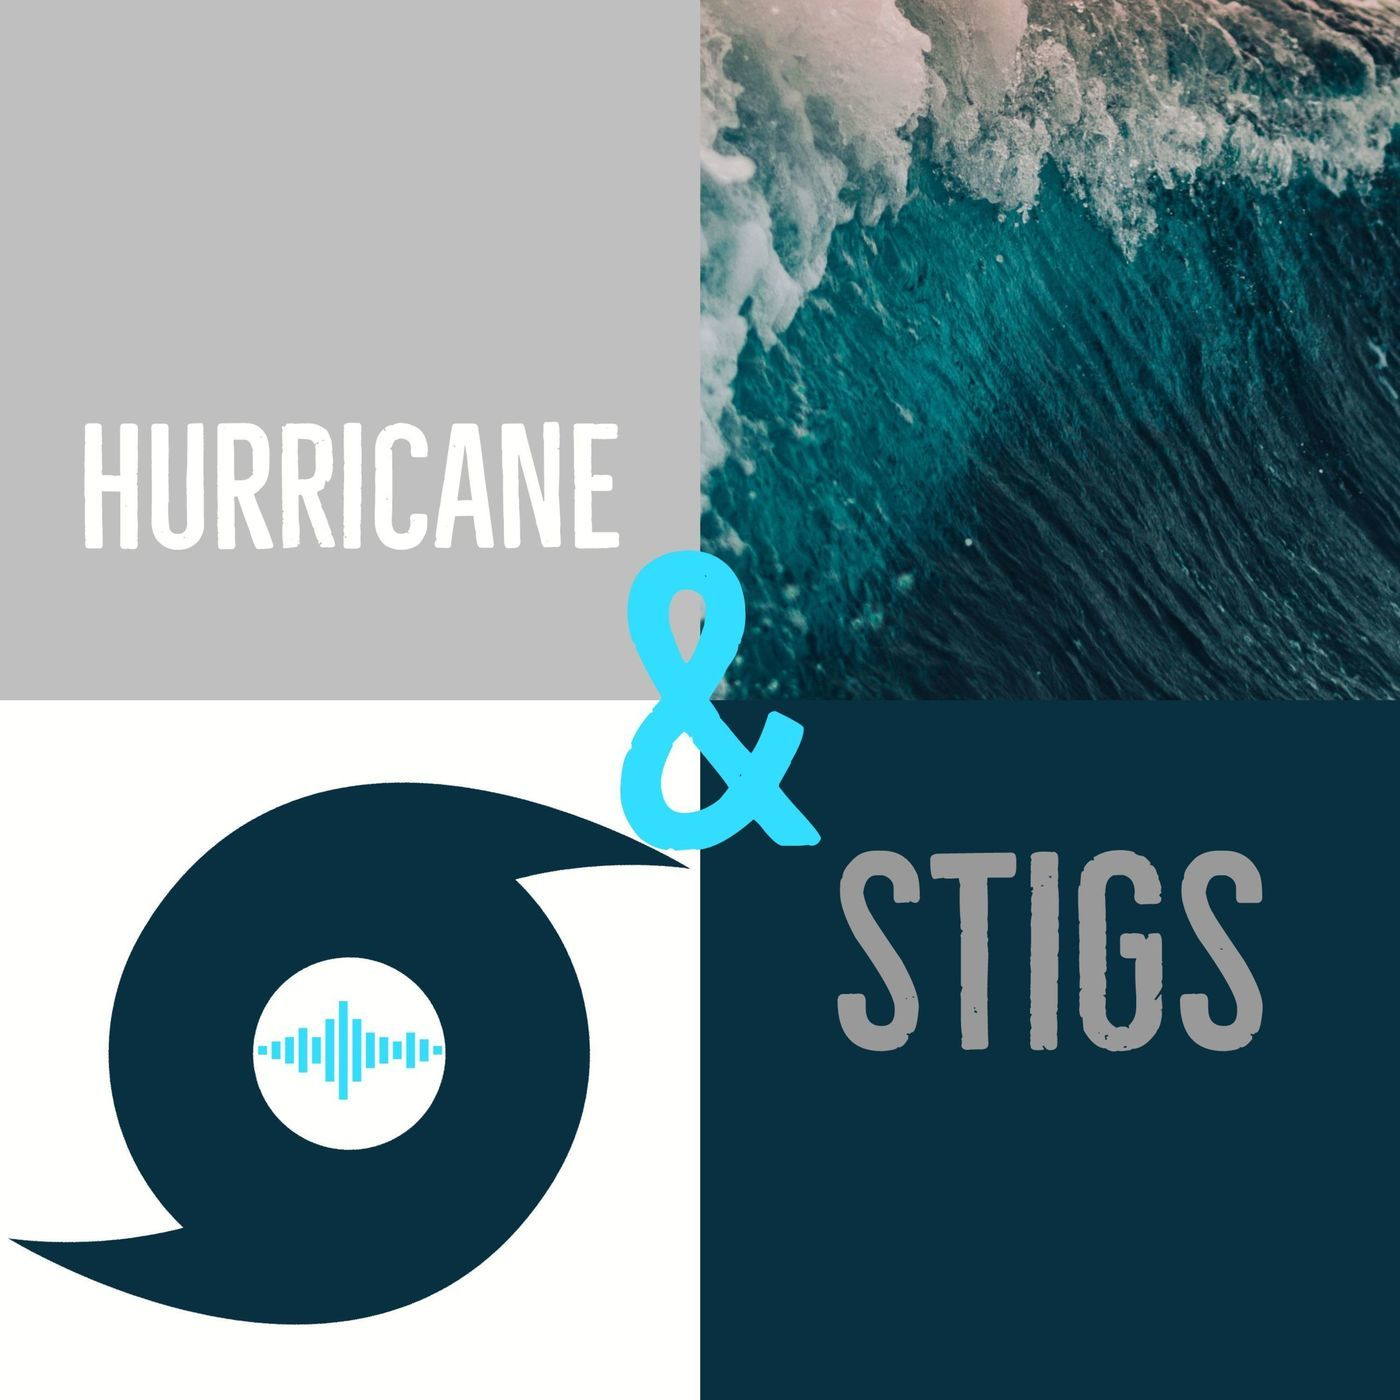 Oscar Hurricane Stigs Fireside Hurricane Stigs Episode 8 Anonymous First Quote And Resolutions